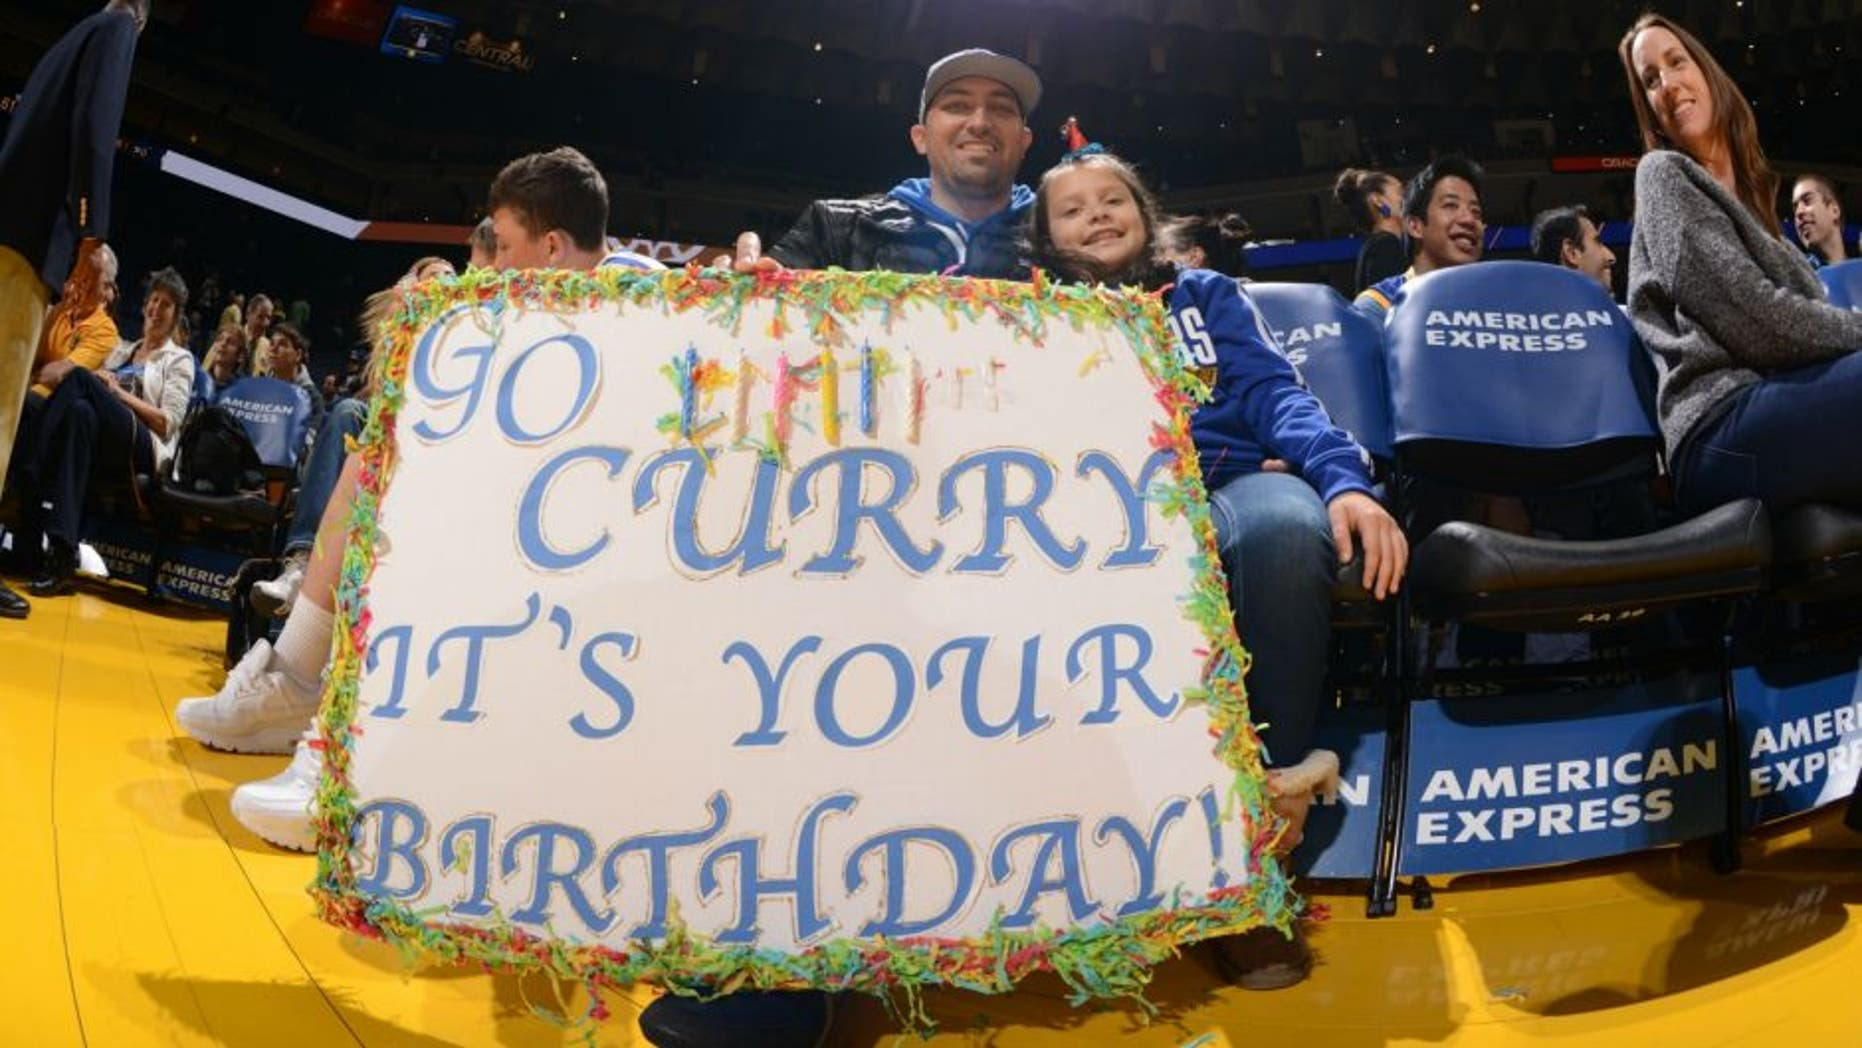 OAKLAND, CA - MARCH 14: Some fans hold up a happy birthday sign for Stephen Curry #30 of the Golden State Warriors on March 14, 2016 at Oracle Arena in Oakland, California. NOTE TO USER: User expressly acknowledges and agrees that, by downloading and or using this photograph, user is consenting to the terms and conditions of Getty Images License Agreement. Mandatory Copyright Notice: Copyright 2016 NBAE (Photo by Noah Graham/NBAE via Getty Images)